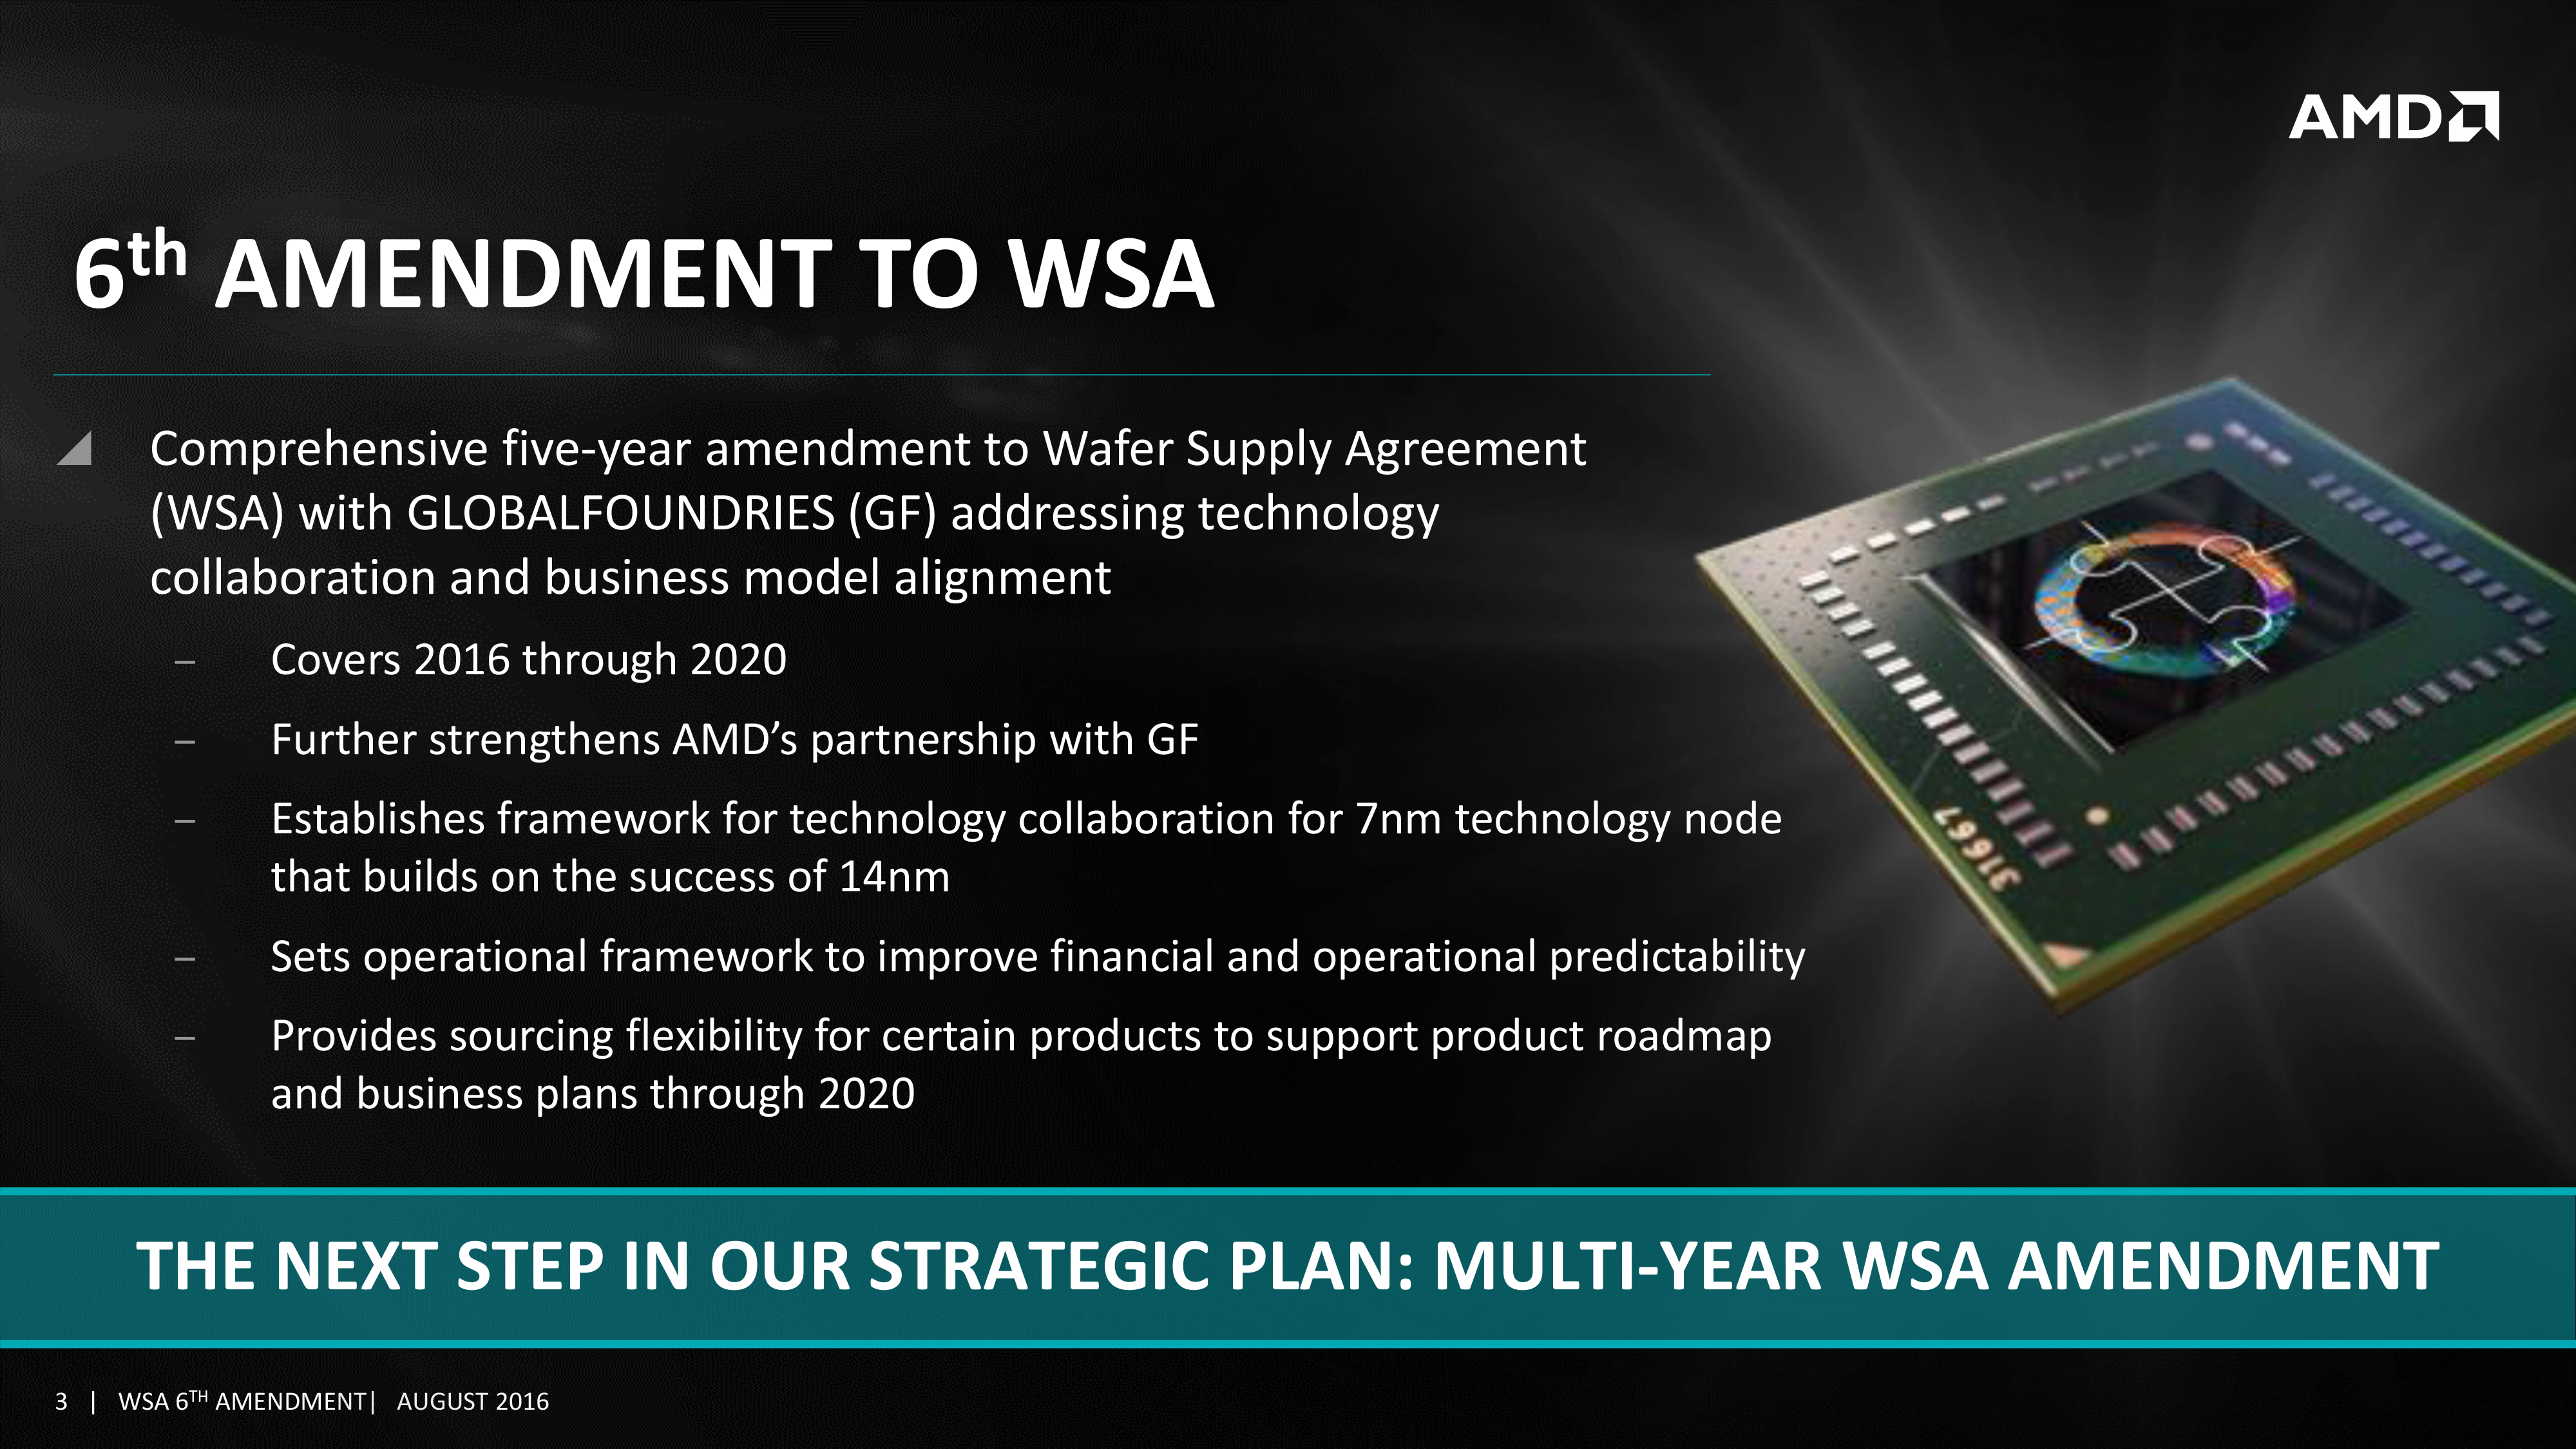 AMD Amends GlobalFoundries Wafer Supply Agreement Through